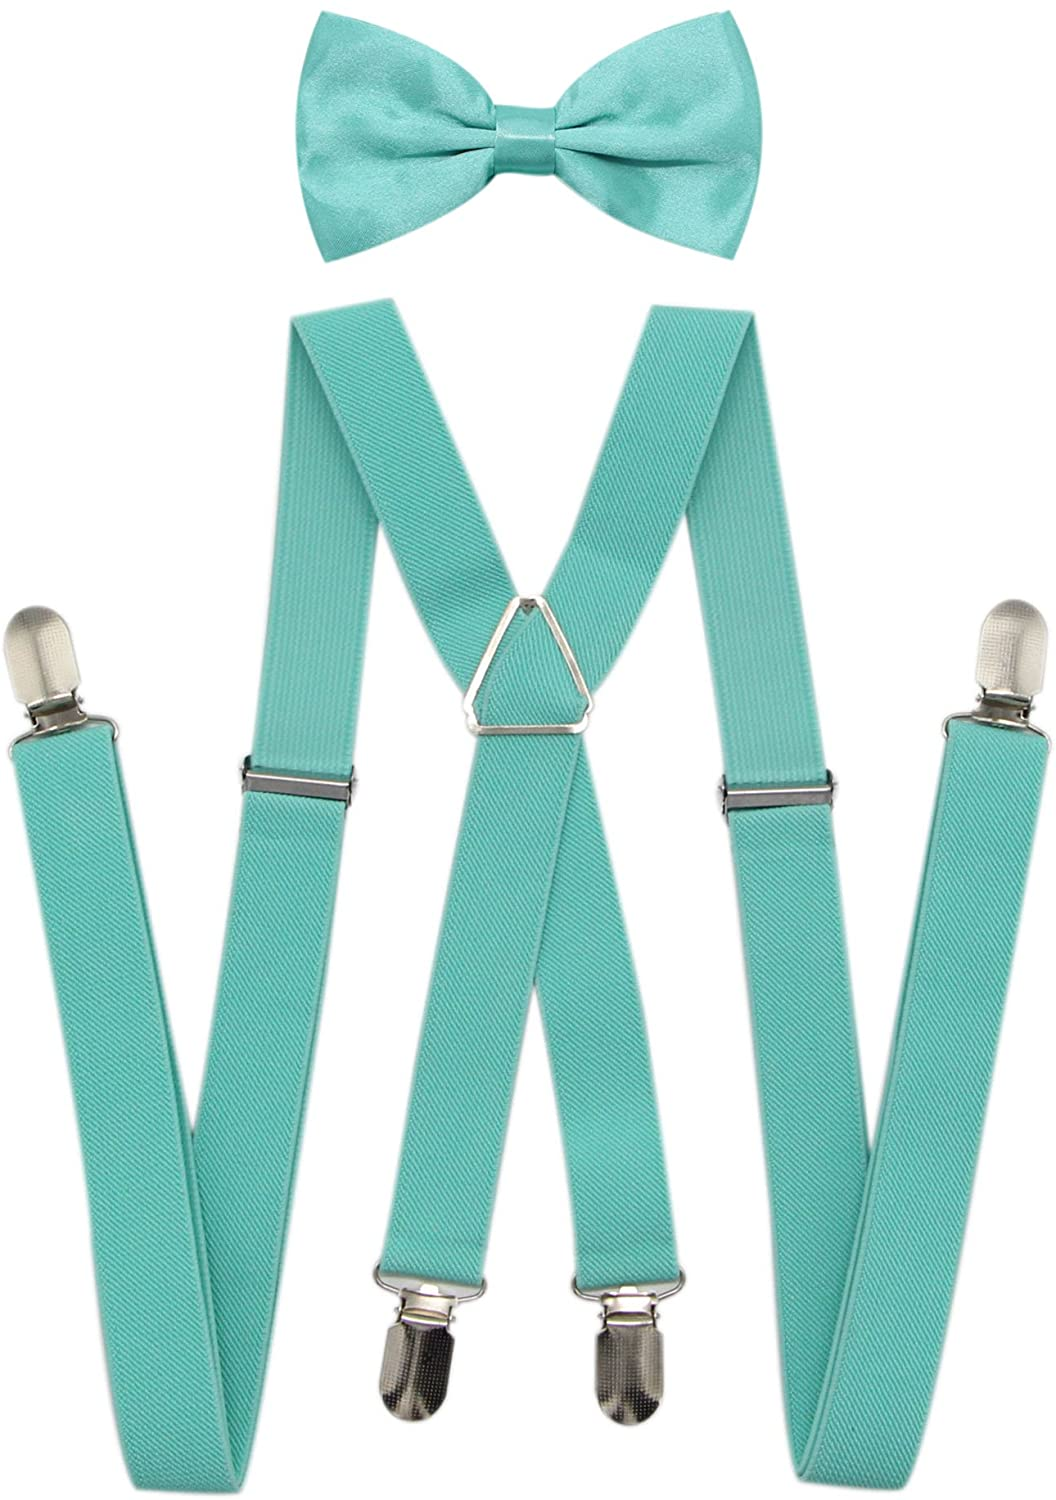 JAIFEI Mens X Back Suspenders & Bowtie Set - Perfect For Weddings & Formal Events